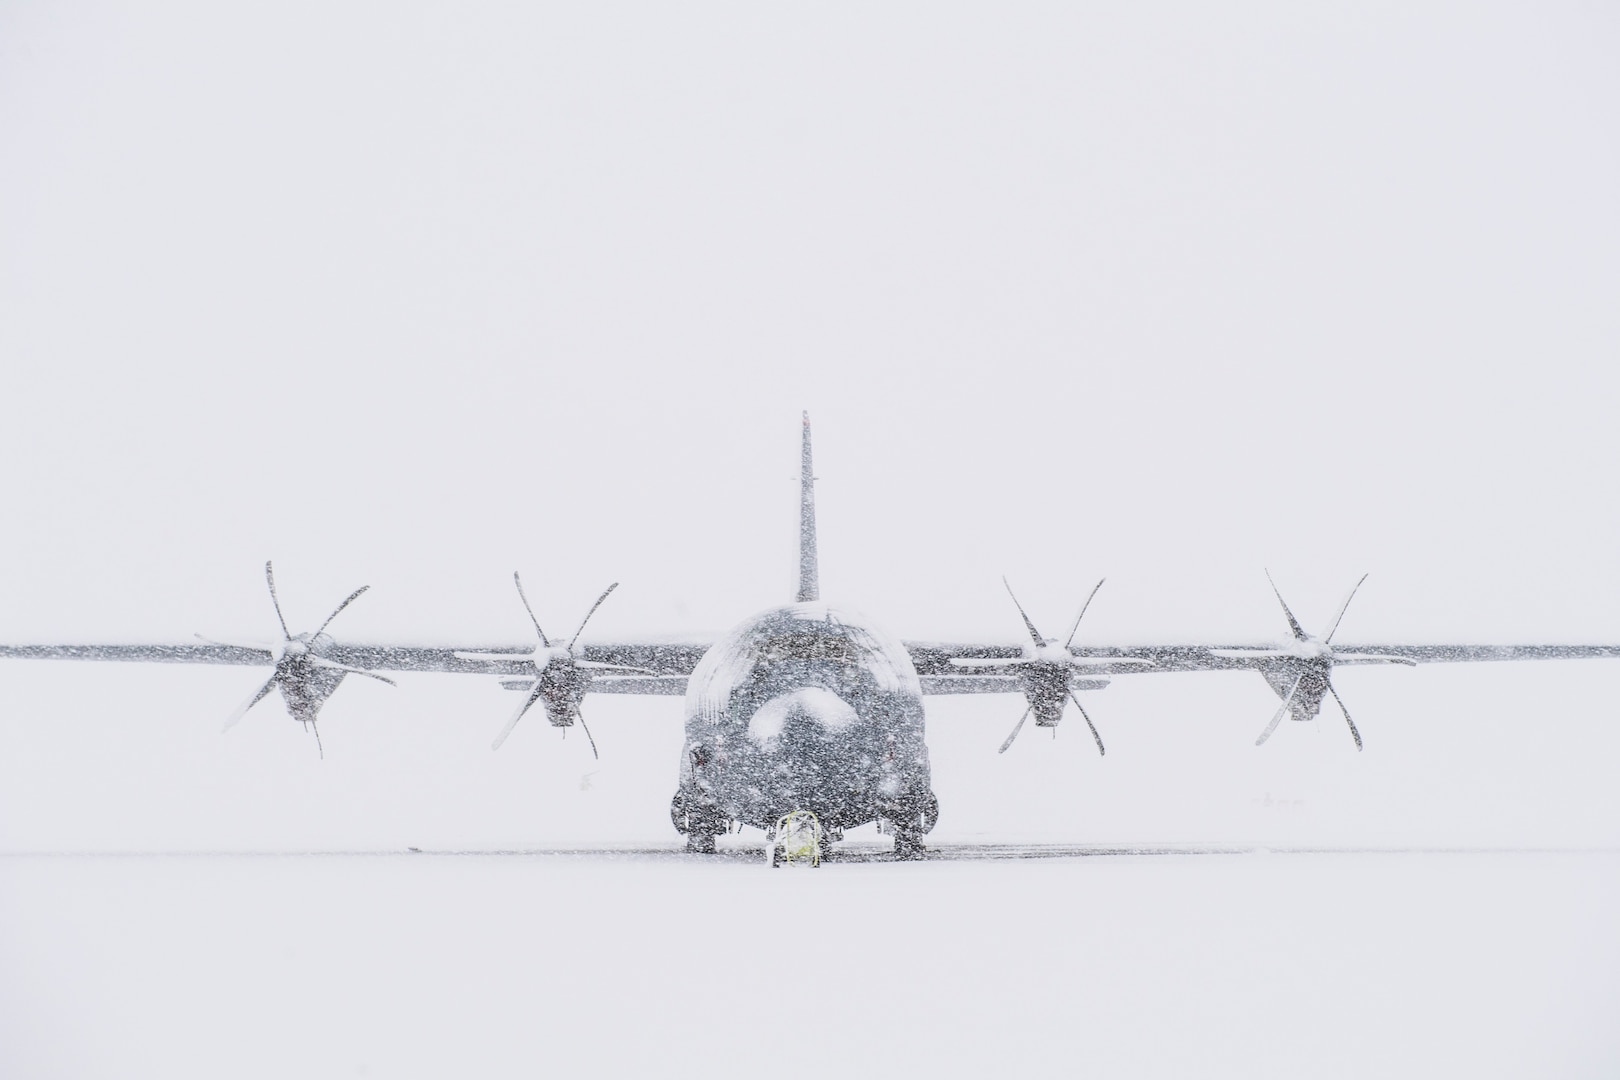 Snow and Ice Control 2019